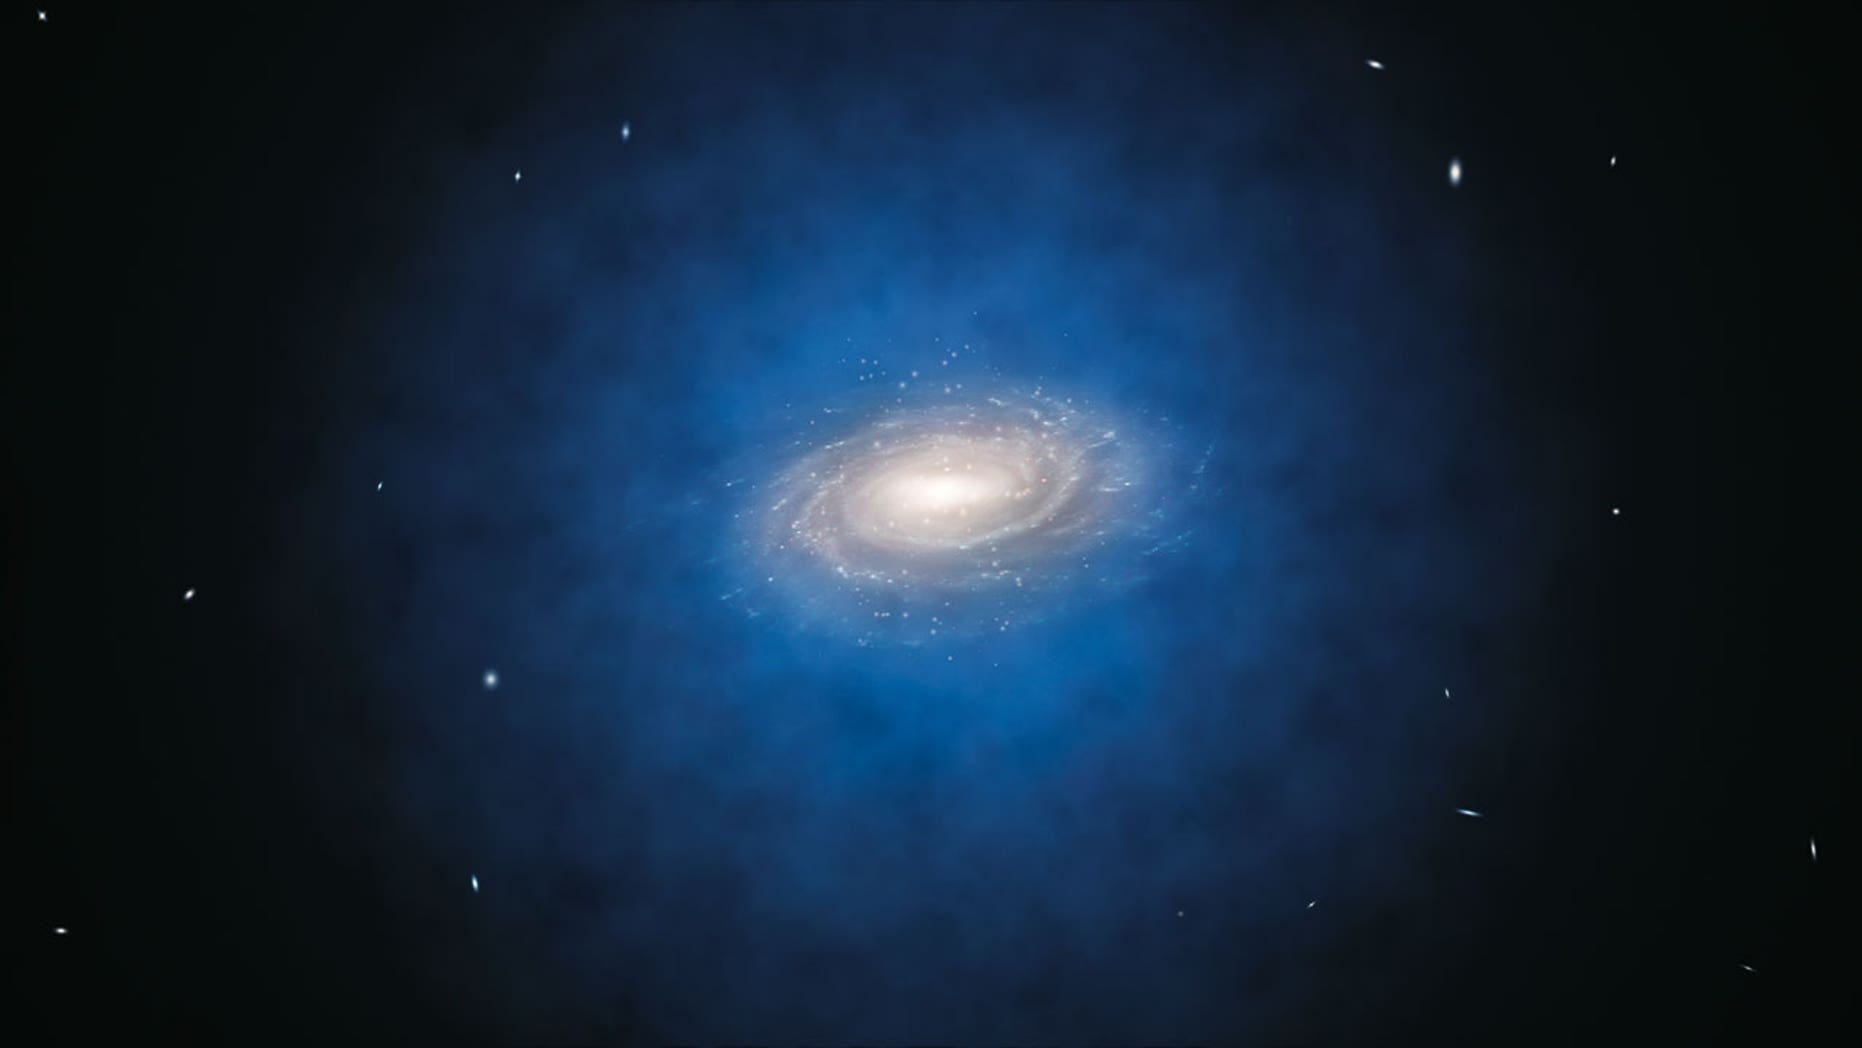 April 18, 2012: The most accurate study so far of the motions of stars in the Milky Way has found no evidence for dark matter in a large volume around the Sun. The blue halo of material surrounding the Milky Way in this artist's impression indicates the previously expected distribution of the mysterious dark matter.